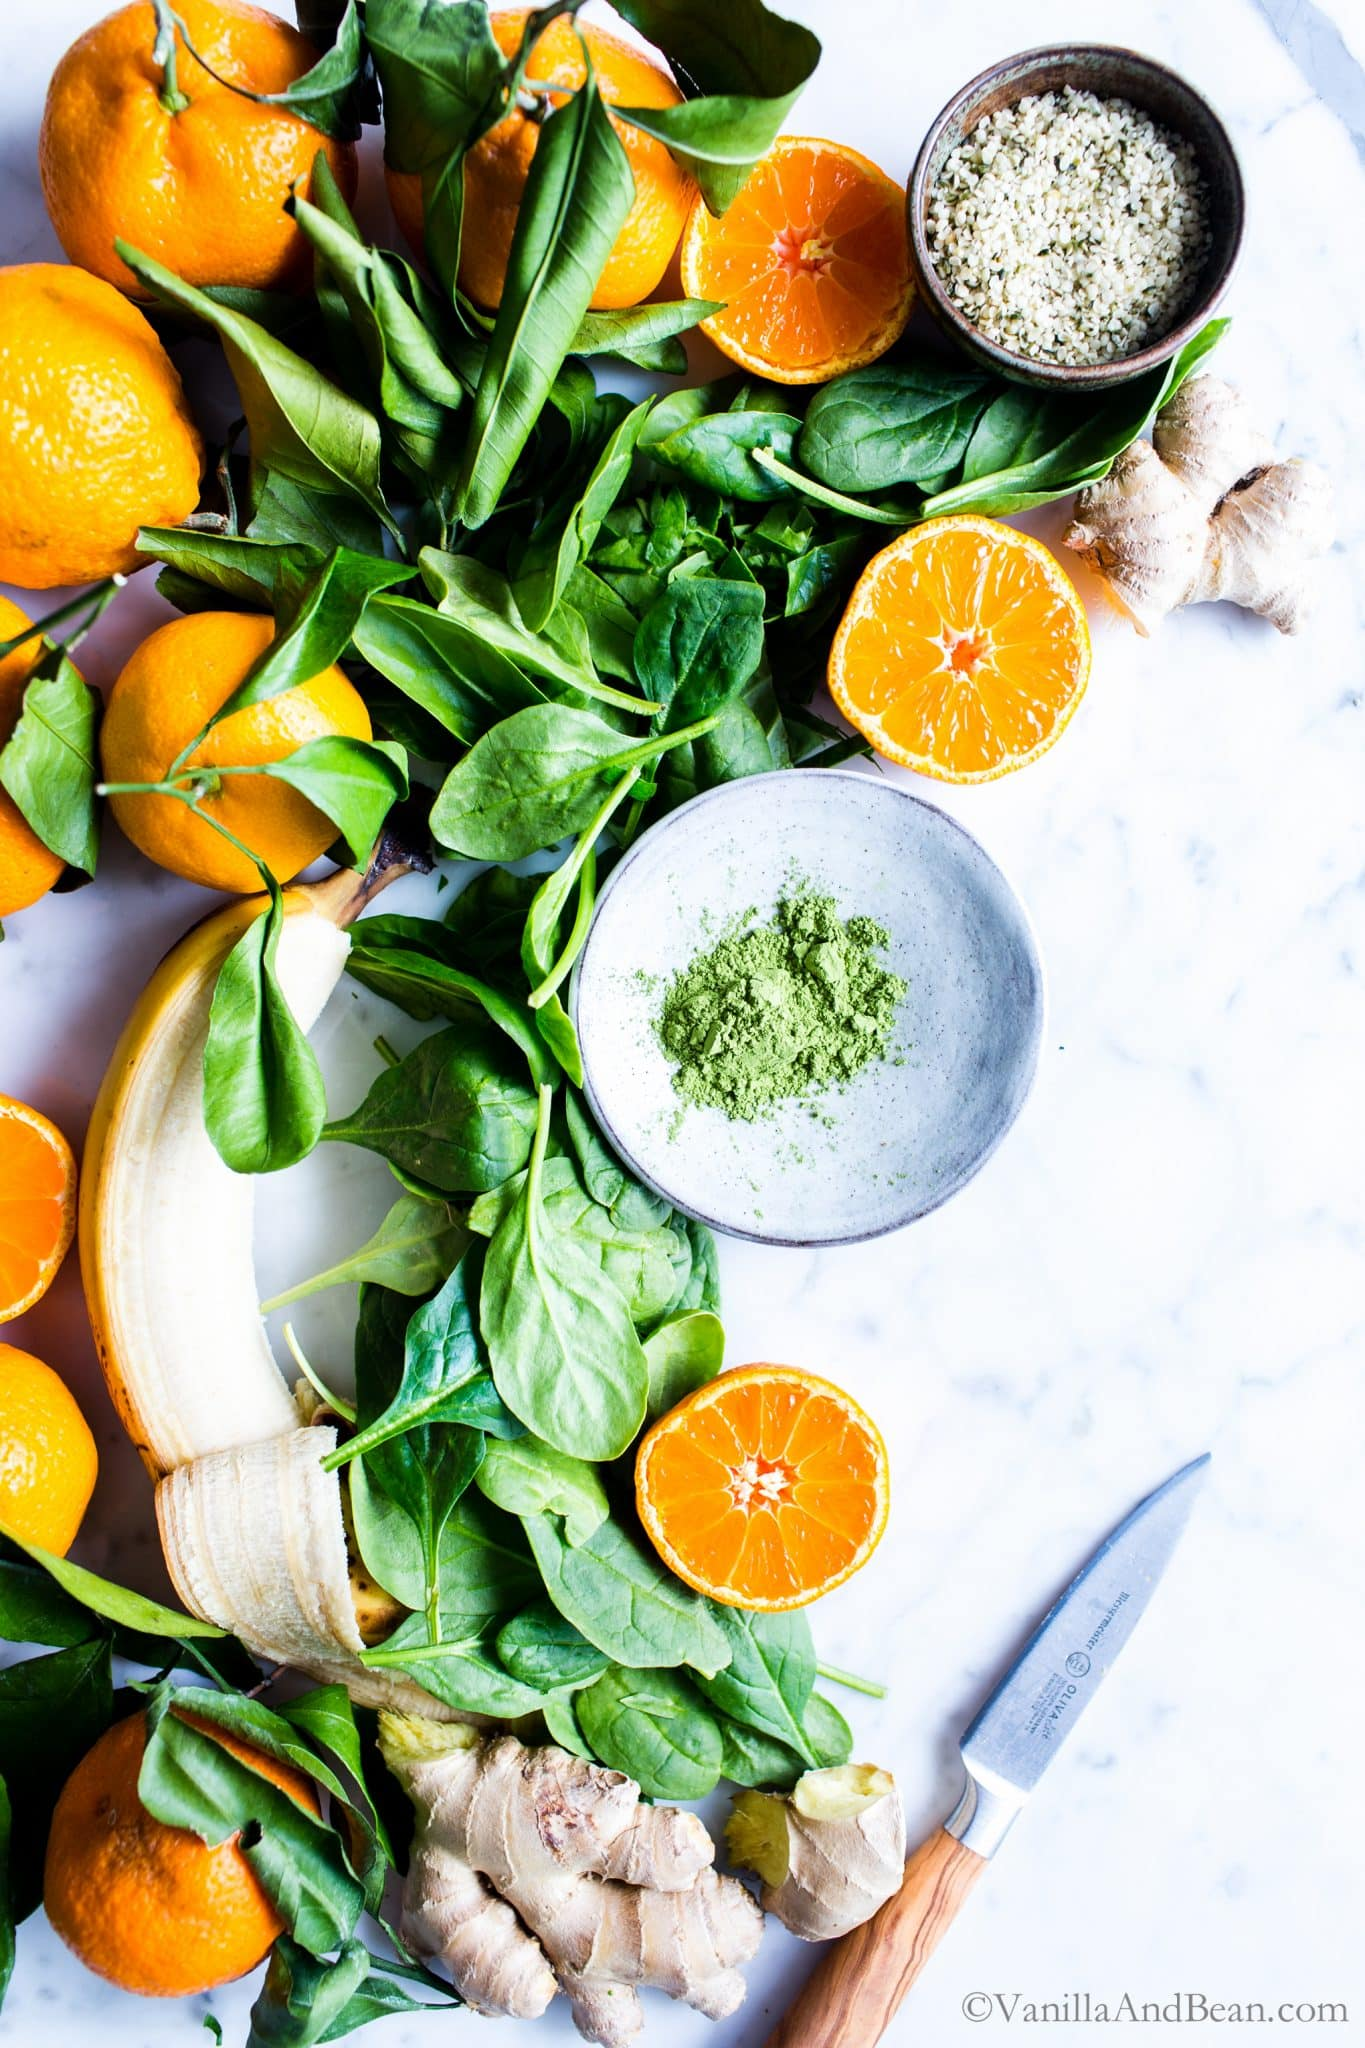 Spinach, banana, oranges, ginger and other recipe ingredients